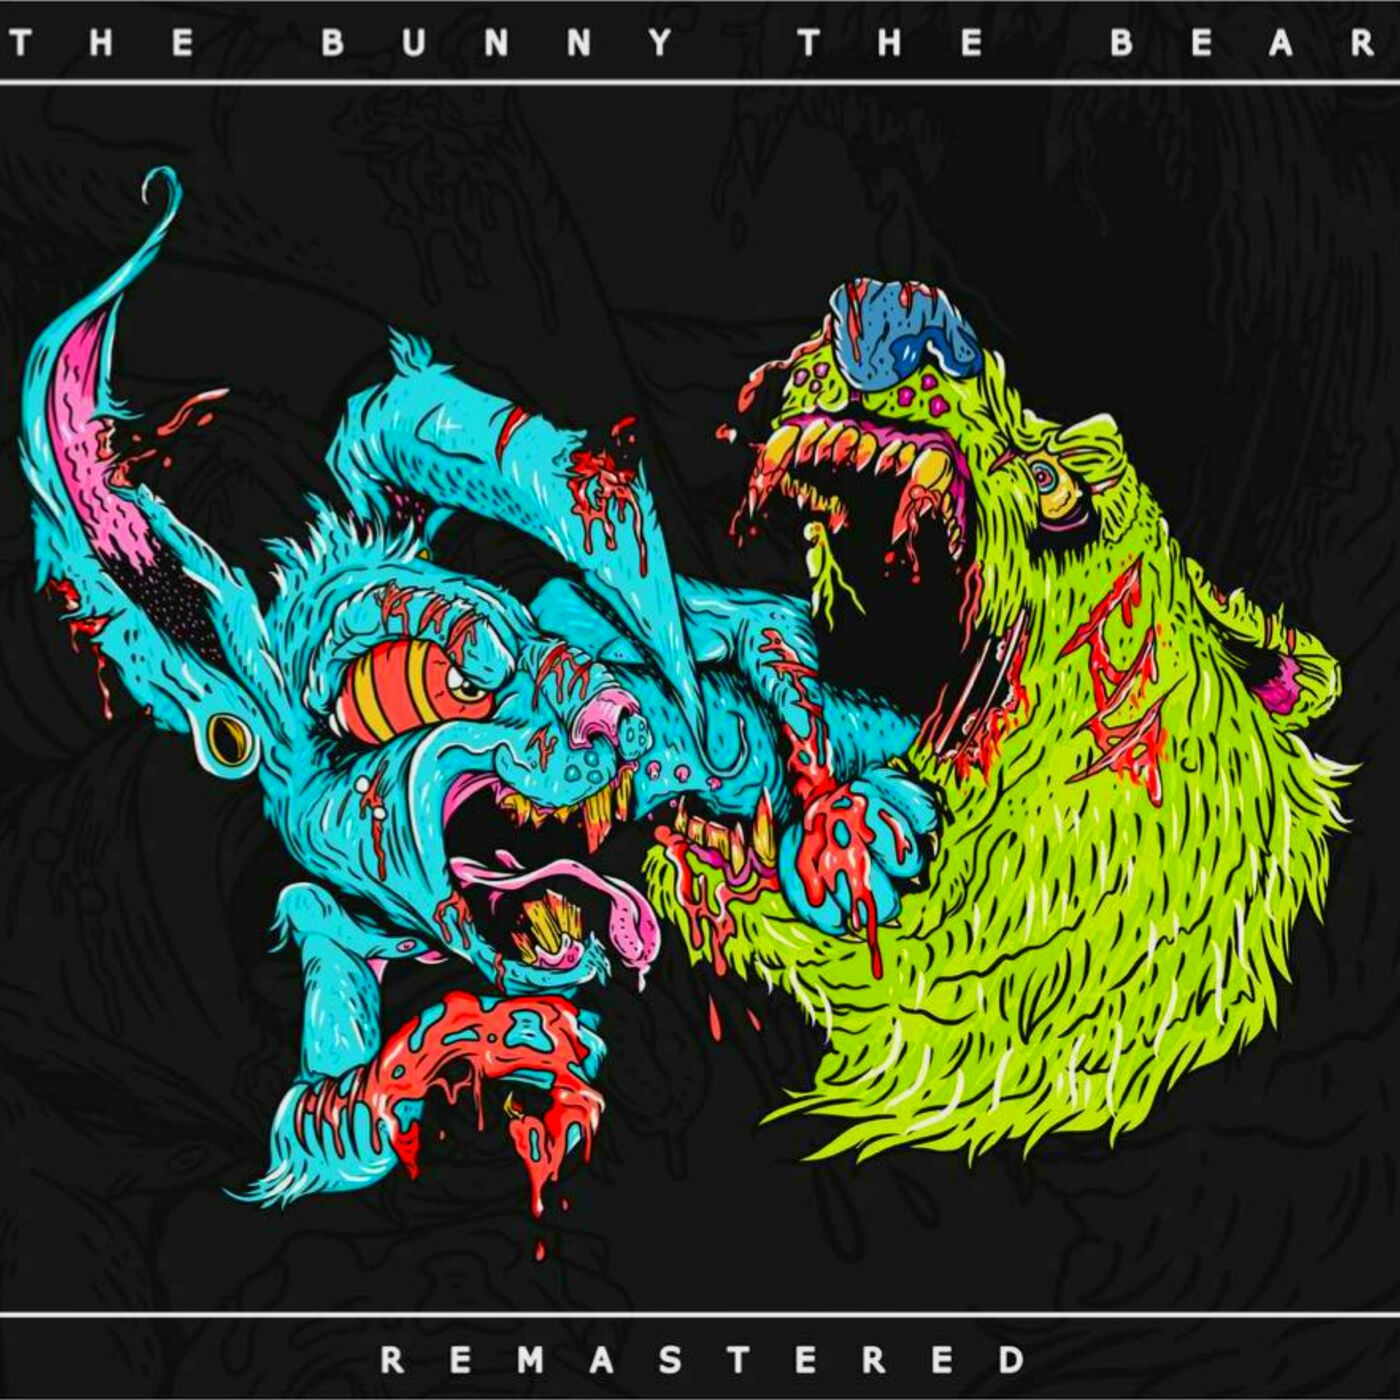 The Bunny The Bear - The Bunny the Bear (Remastered) (2020)